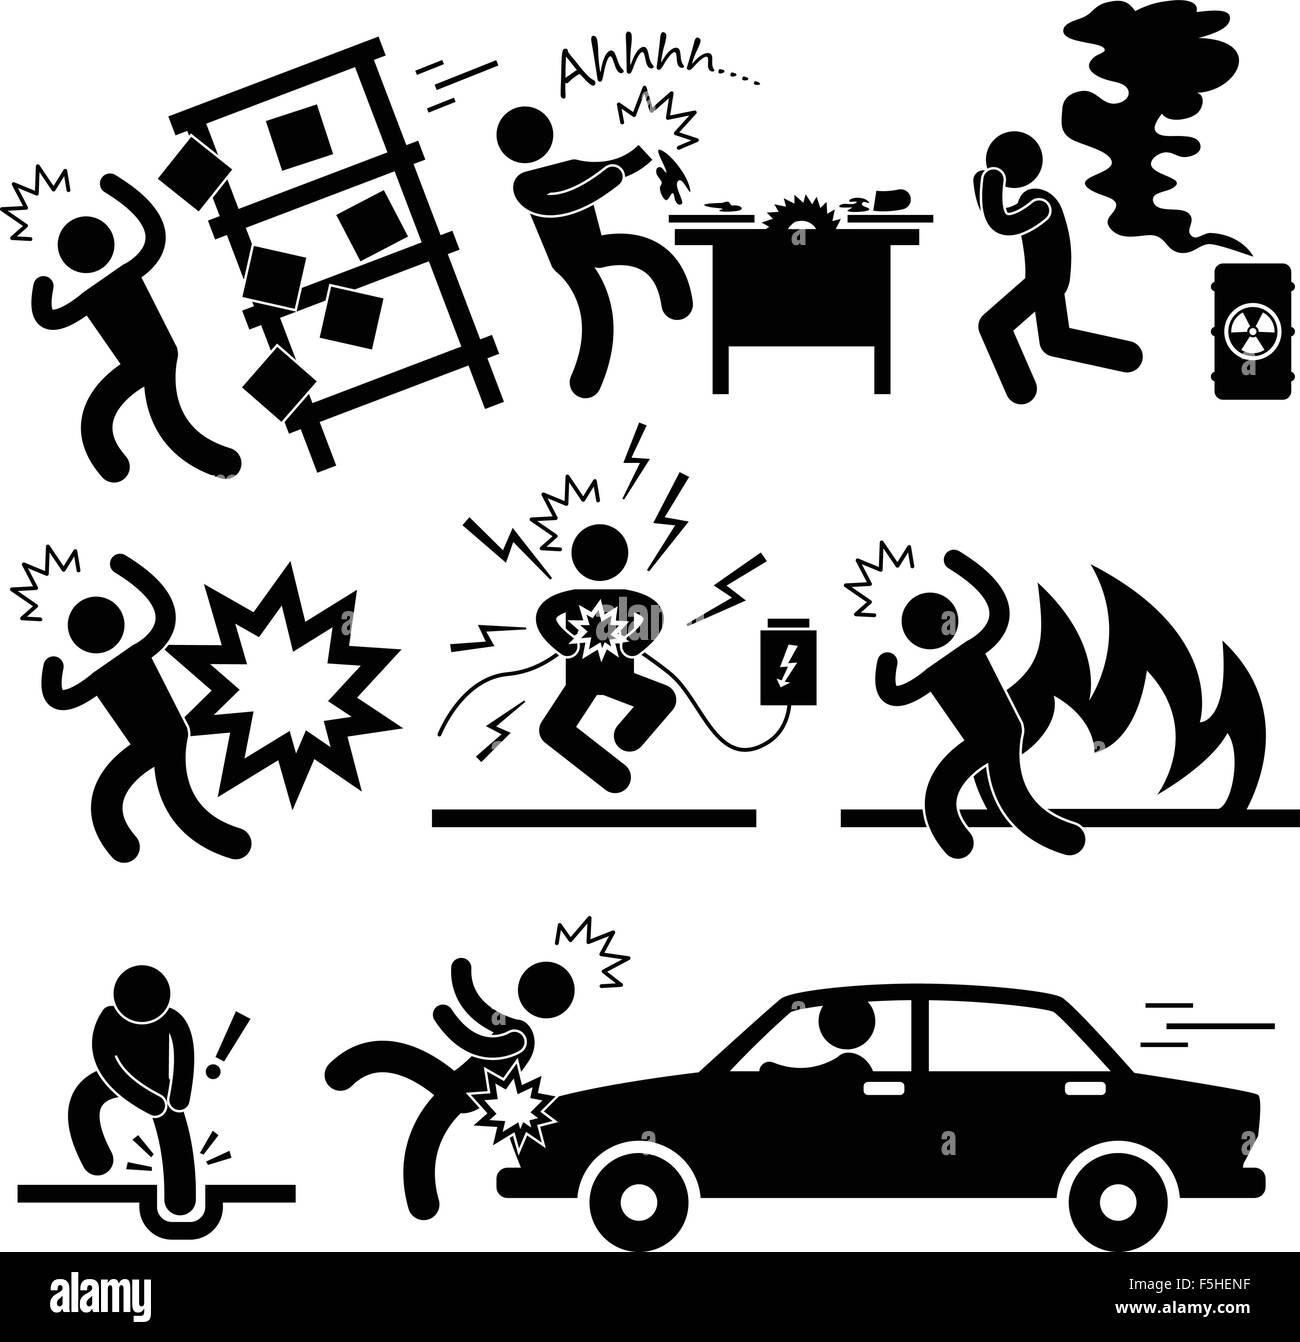 car accident explosion electrocuted fire danger icon clip art explosion happy clip art exsplosion golf ball